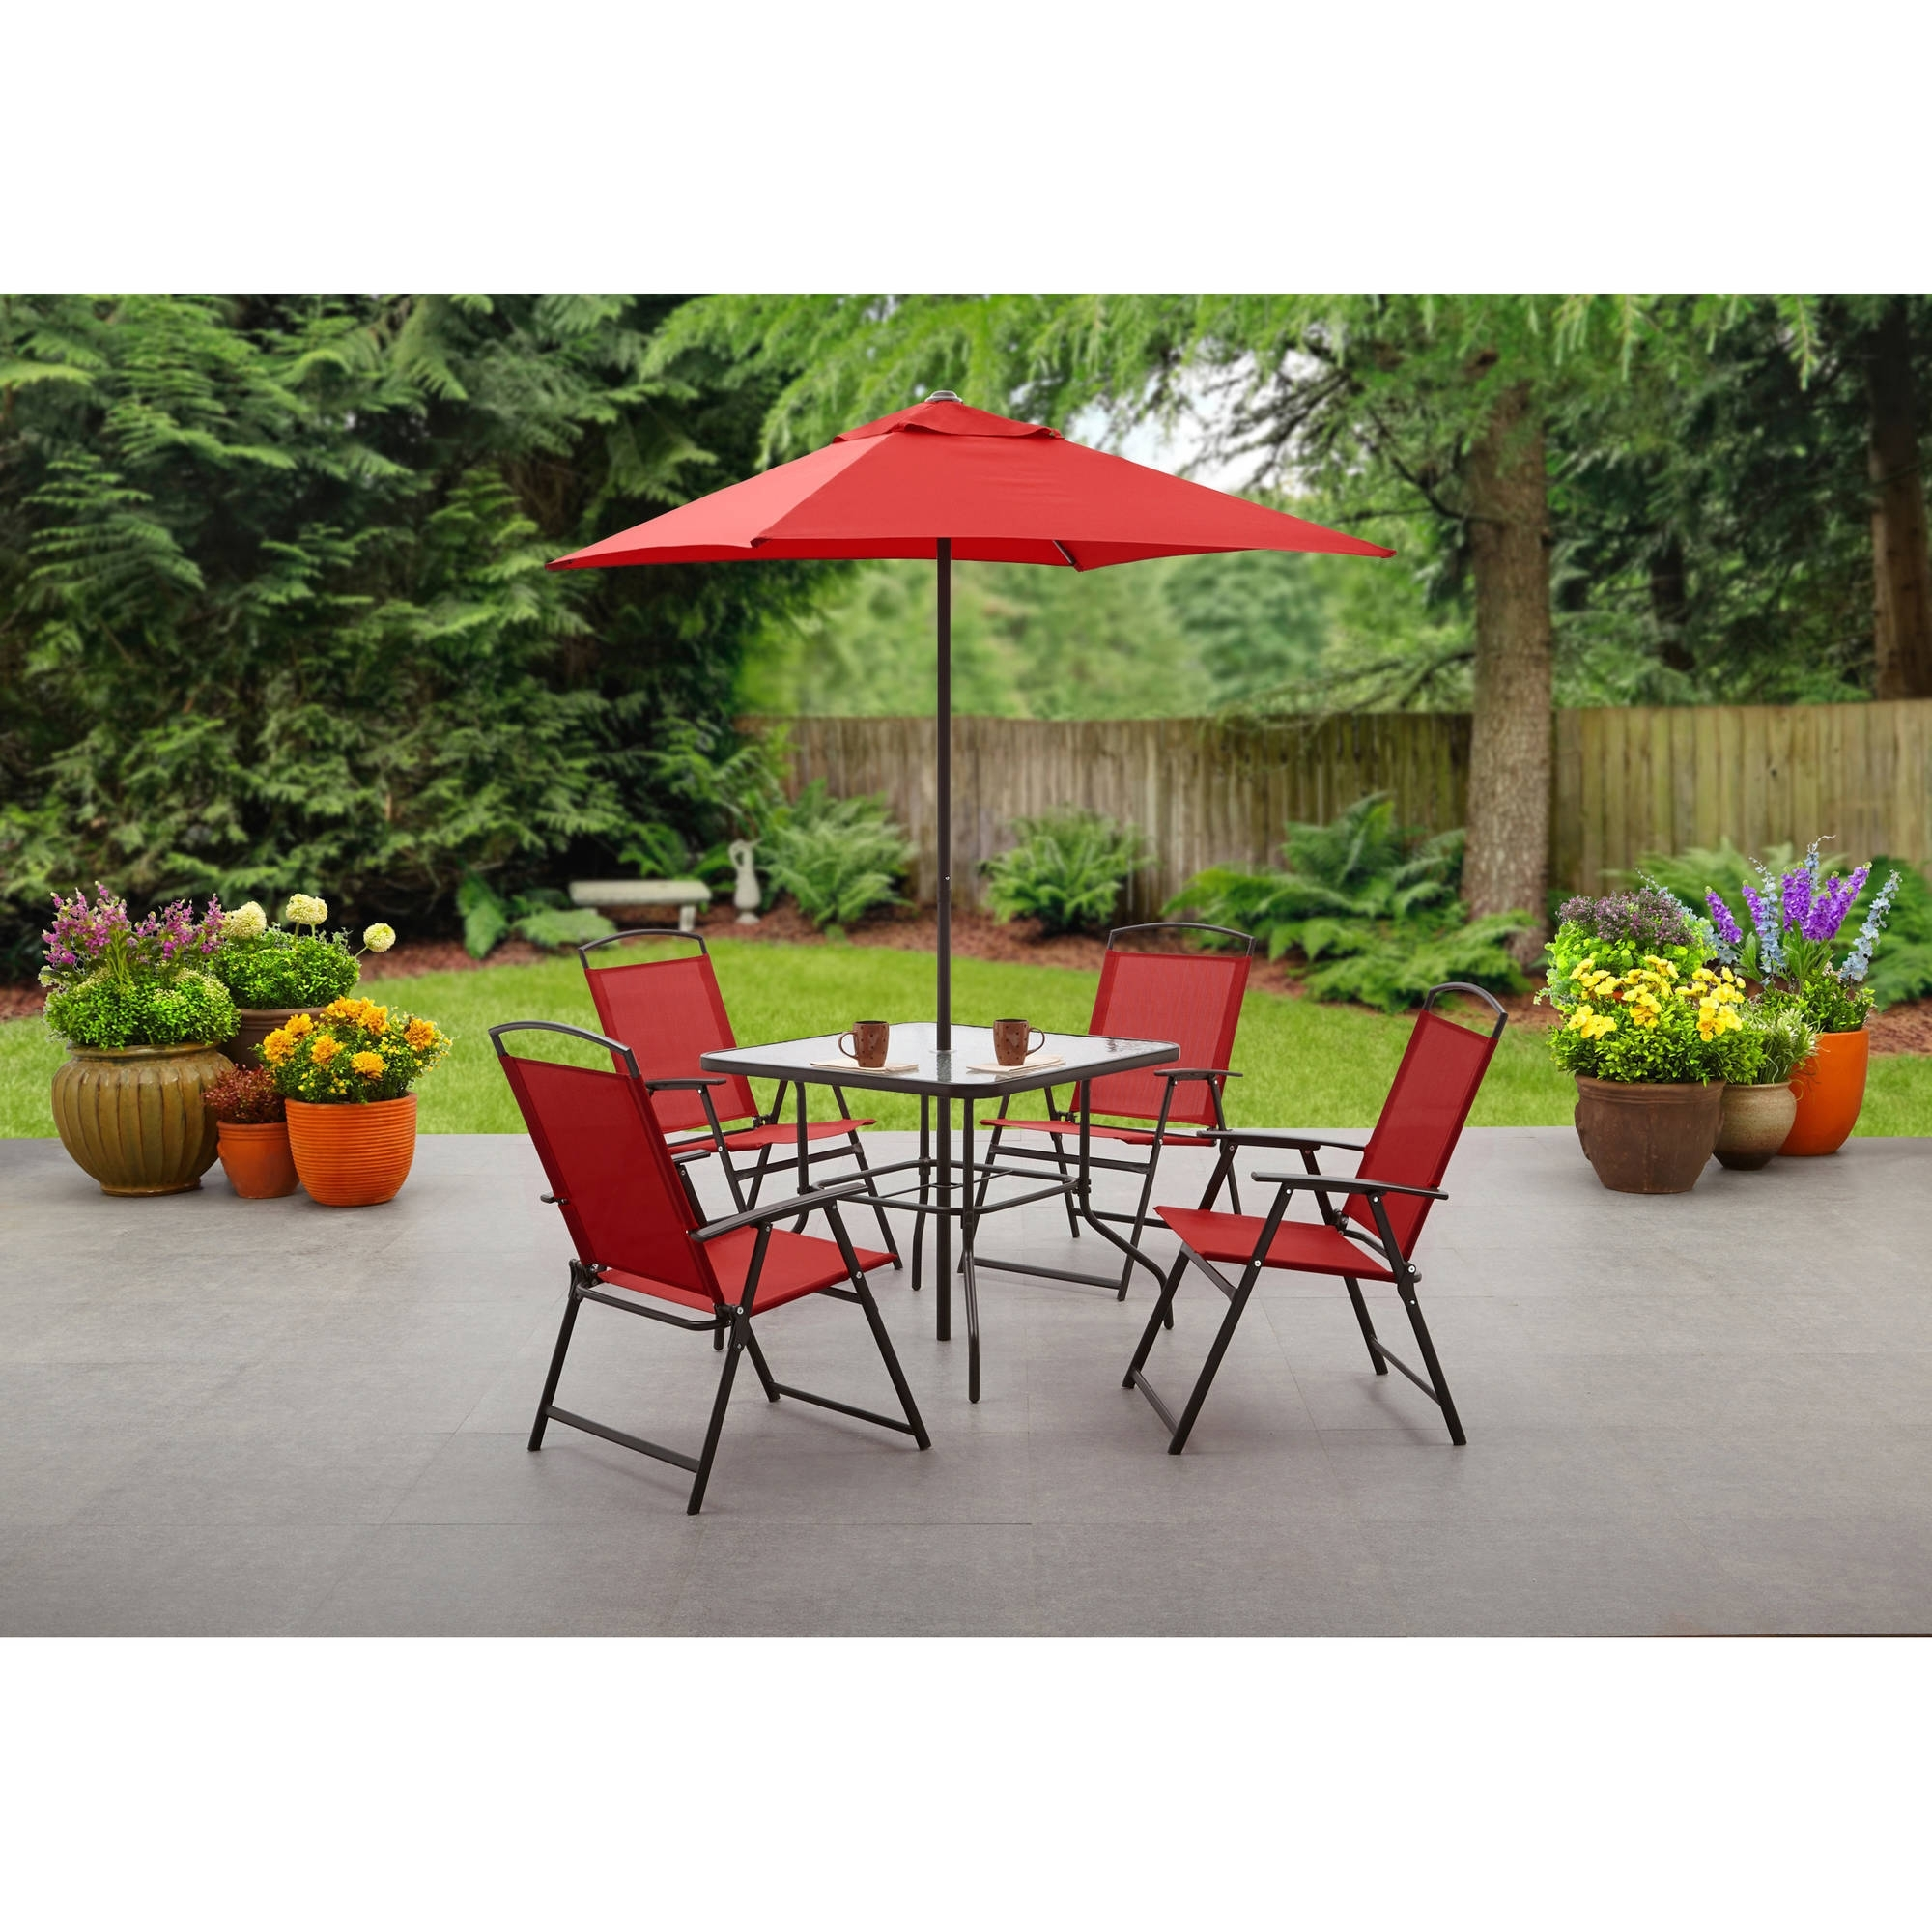 Folding Outdoor Dining Tables For Famous Mainstays Albany Lane 6 Piece Folding Dining Set, Multiple Colors (View 11 of 25)